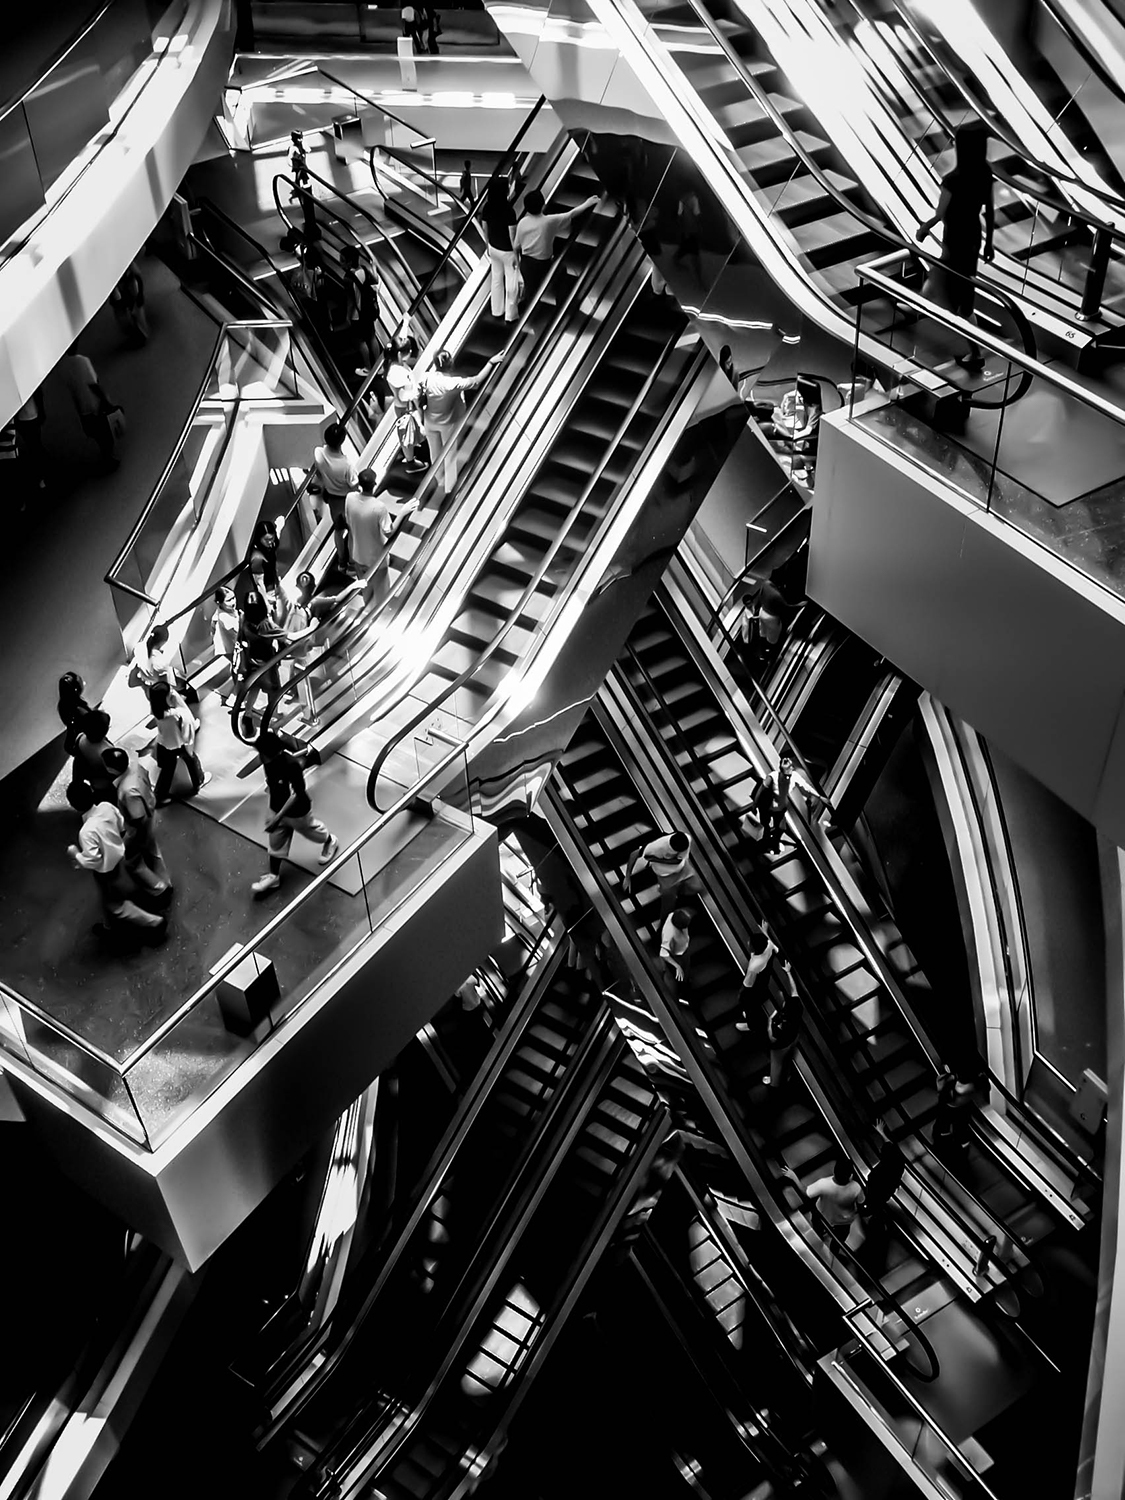 <p>Escalators in a Hong Kong shopping mall prove reminiscent of M.C. Escher's drawings.</p><p>Pardon the pun in the title. Had to be done.</p>